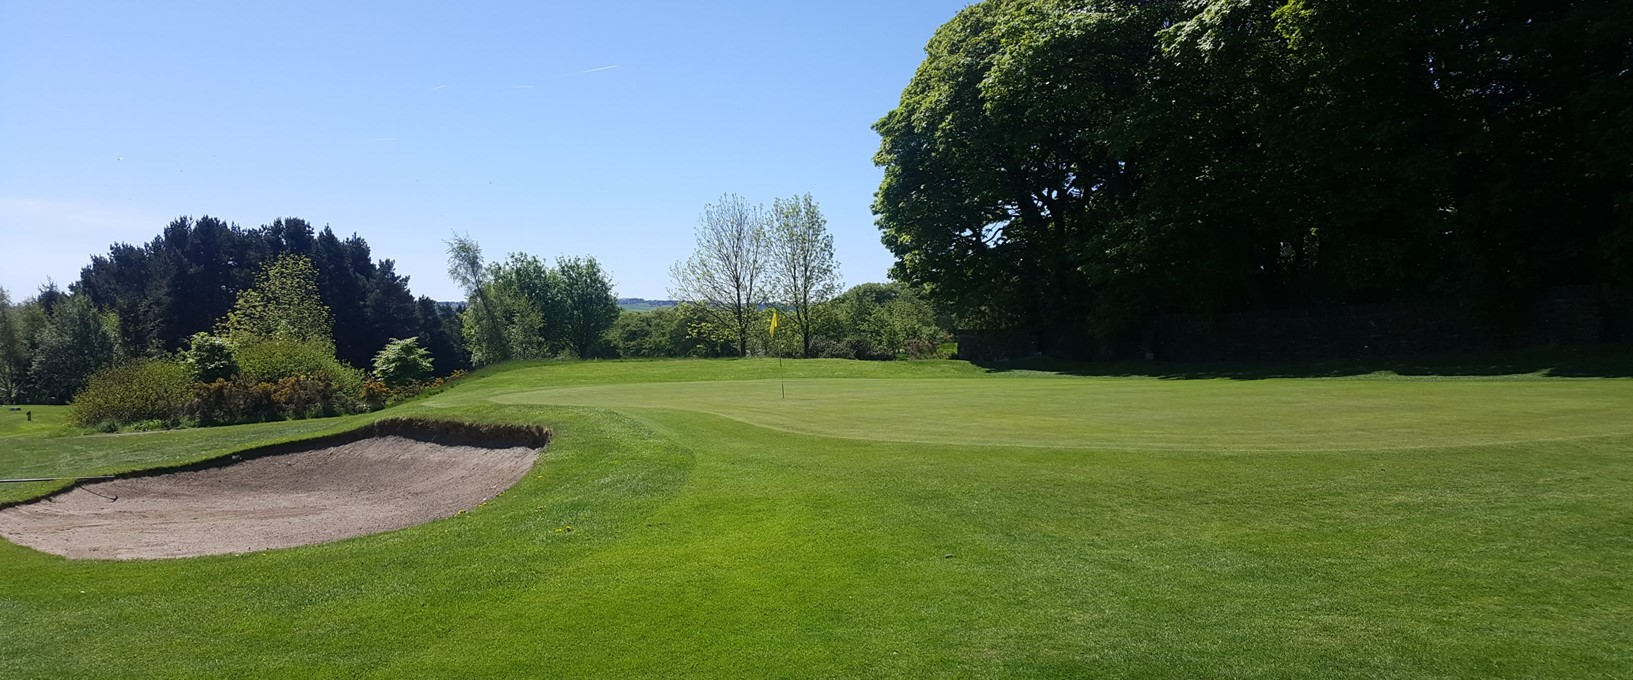 The 2nd green at West Bradford Golf Club